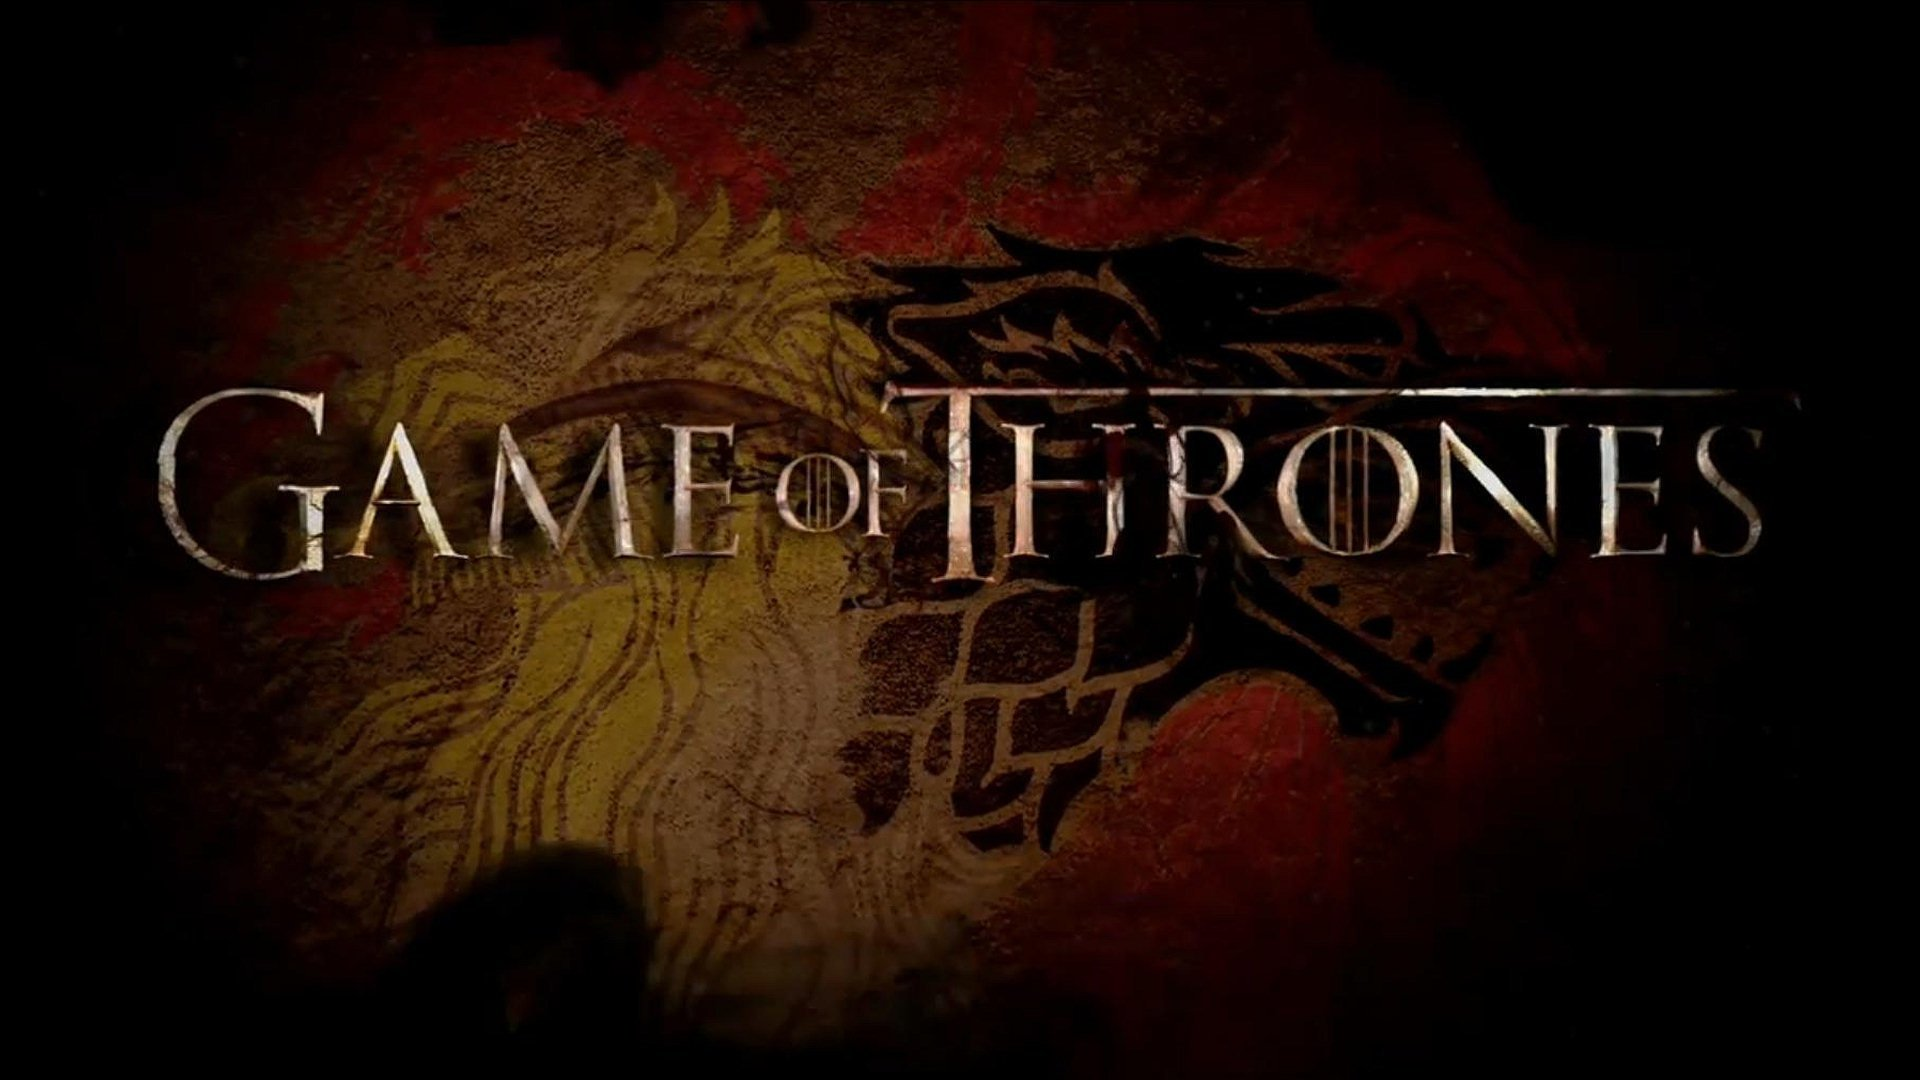 Free Game Of Thrones high quality wallpaper ID:383409 for full hd 1920x1080 computer